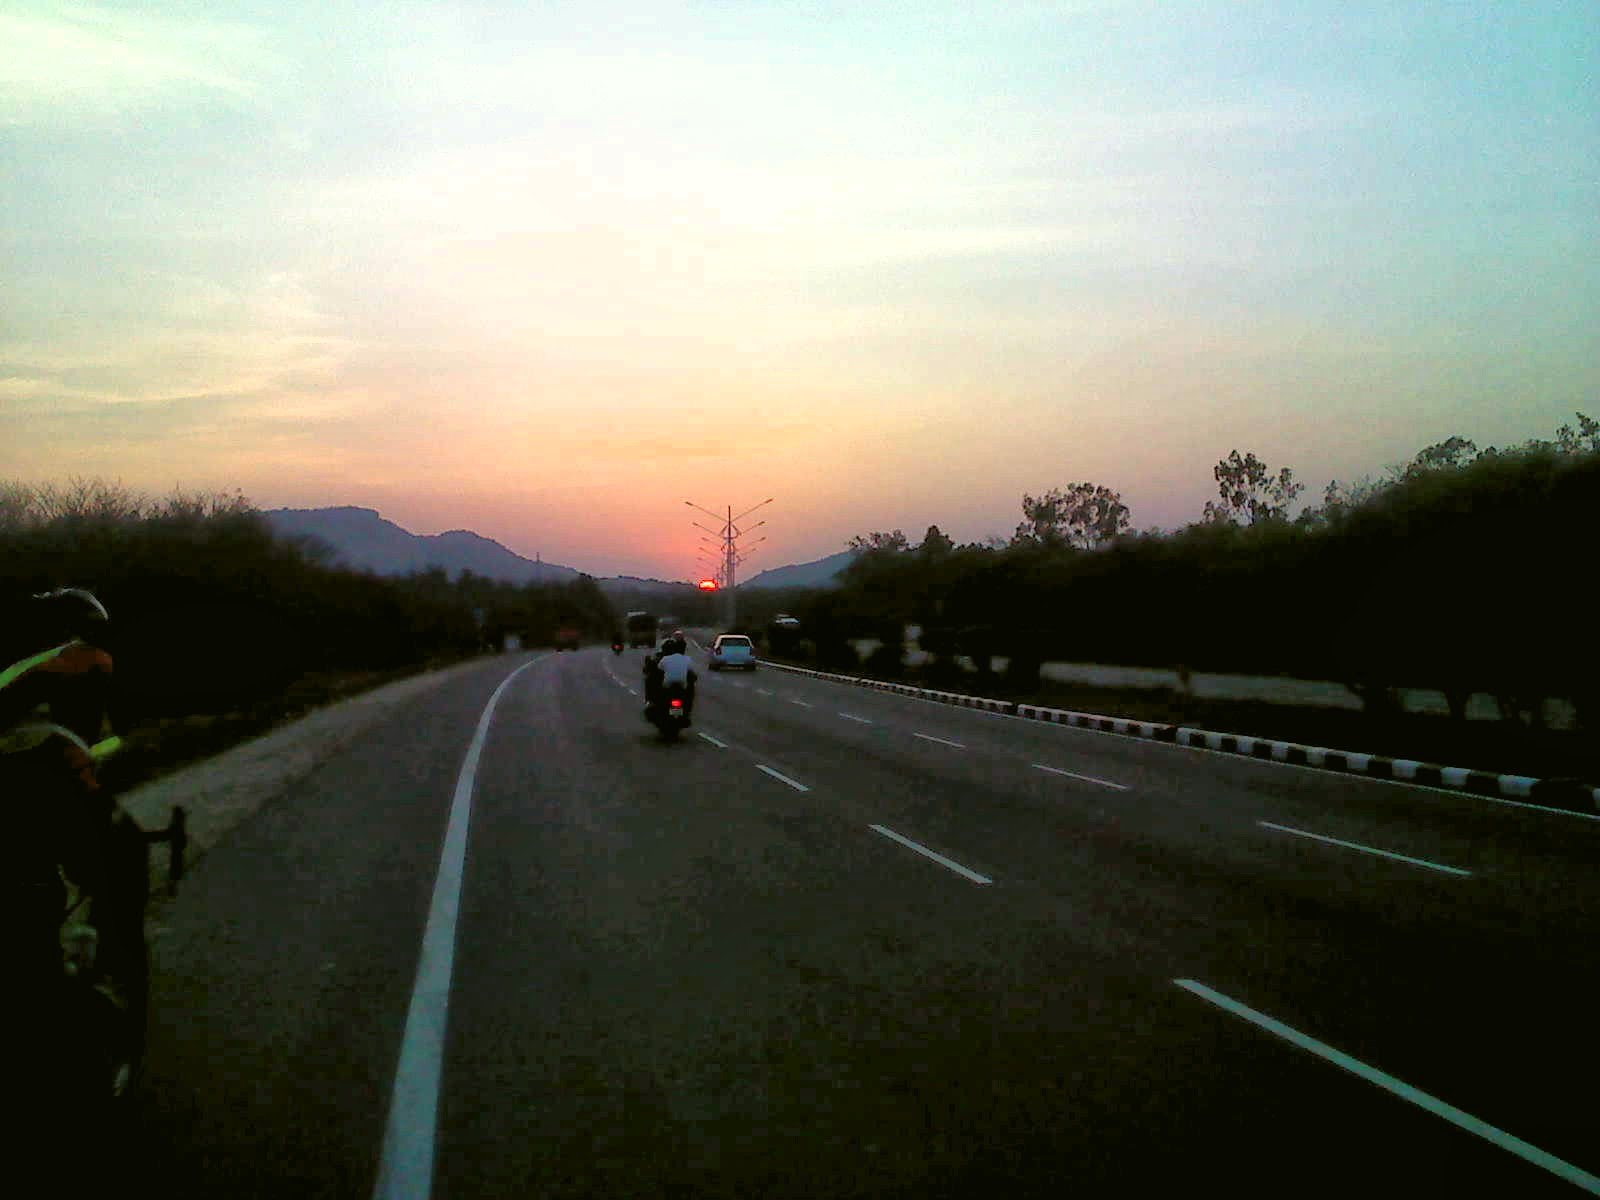 Randonneur cycling into the Sunset on Chennai highway near Bargur and Krishnagiri